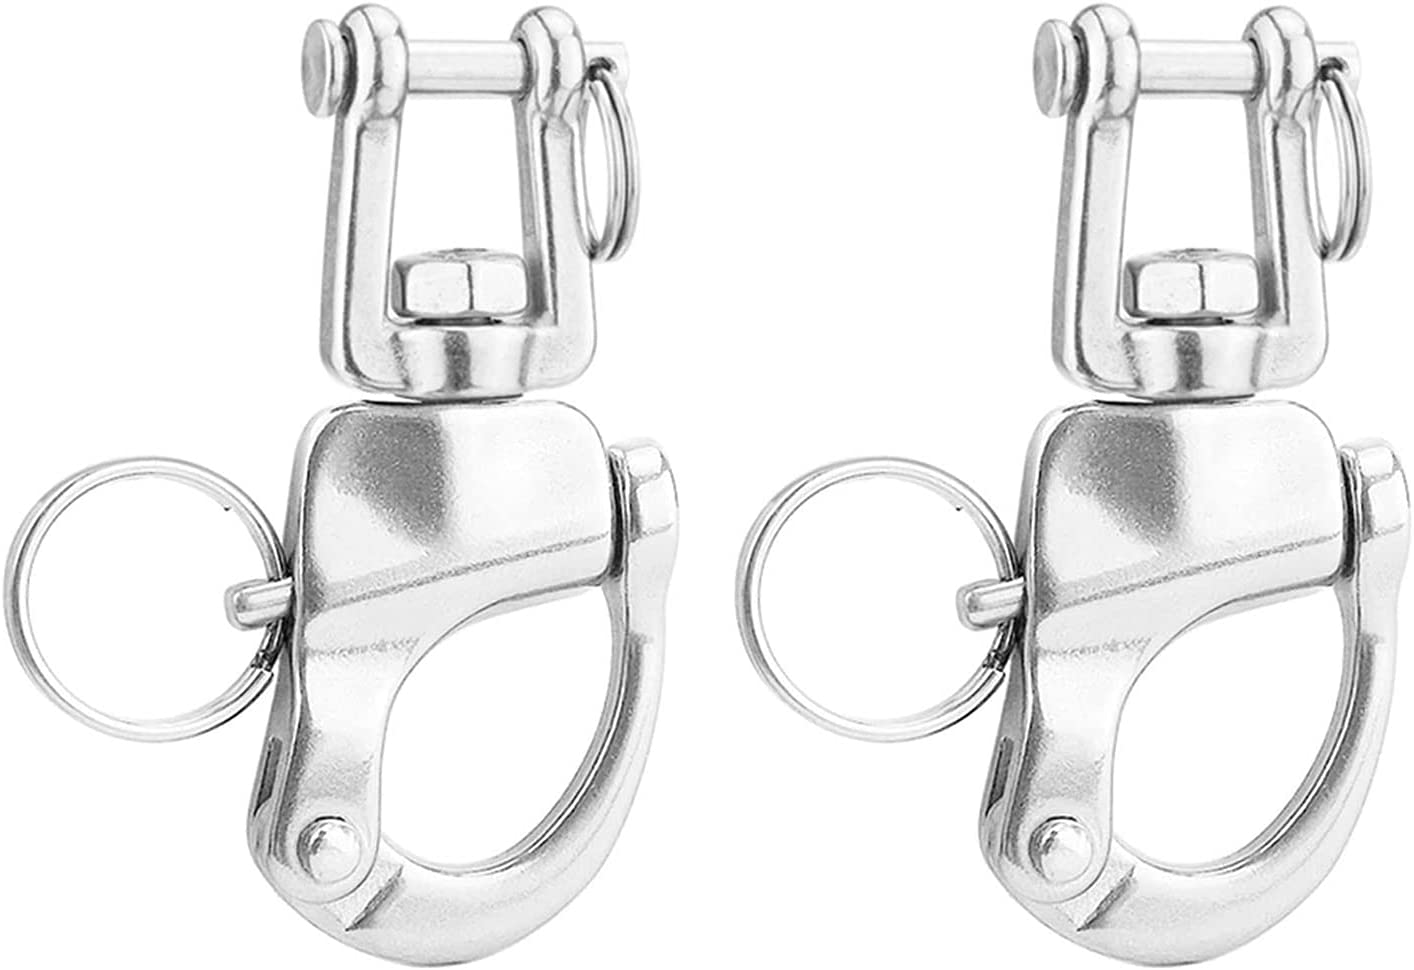 YDSHOLL 2PCS 316 Stainless Steel Release Quick Shackle Swivel Bo Overseas parallel import regular Super beauty product restock quality top! item